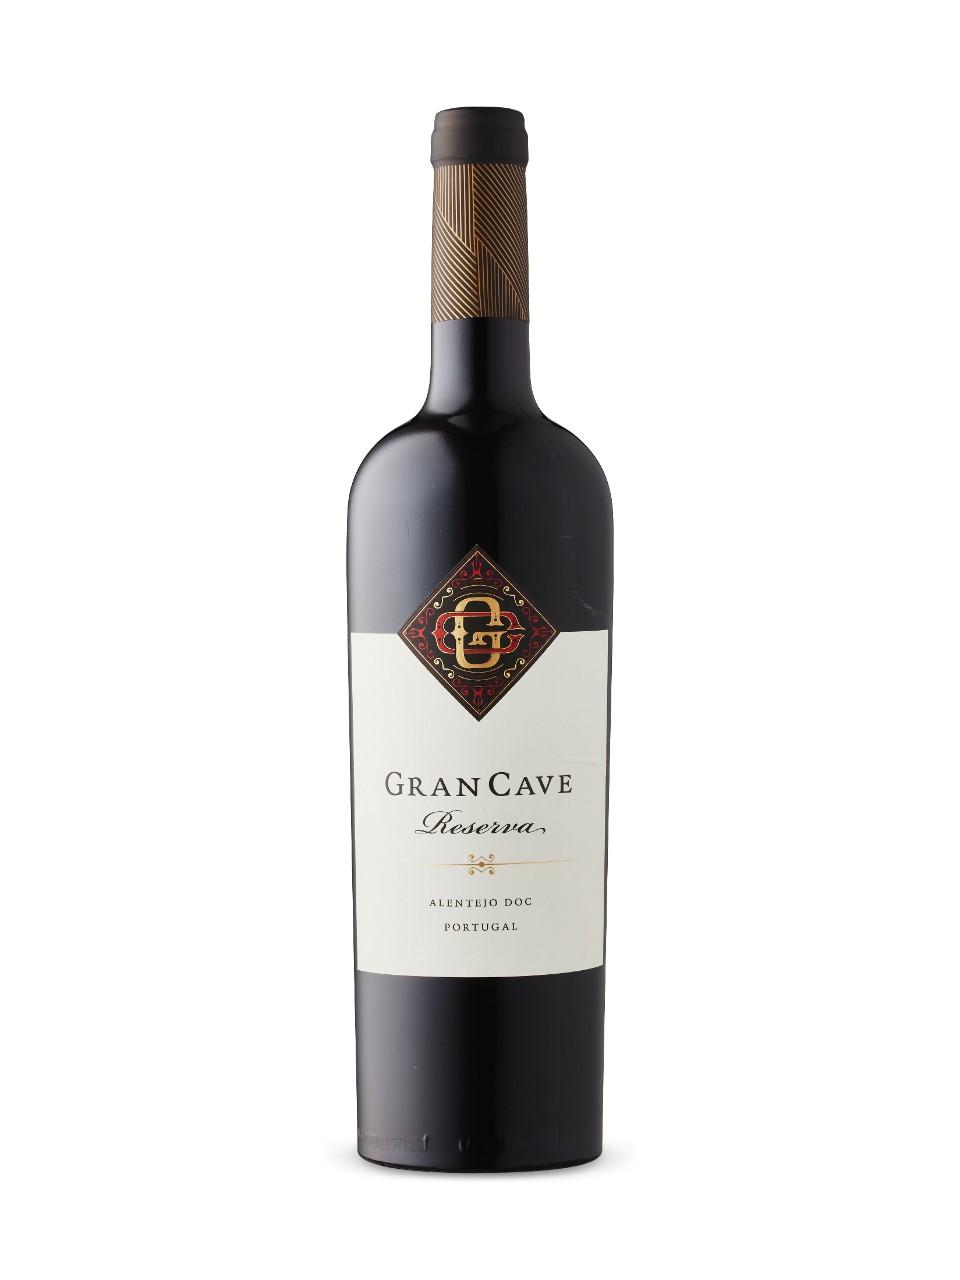 Grancaves Reserva 2014 from LCBO